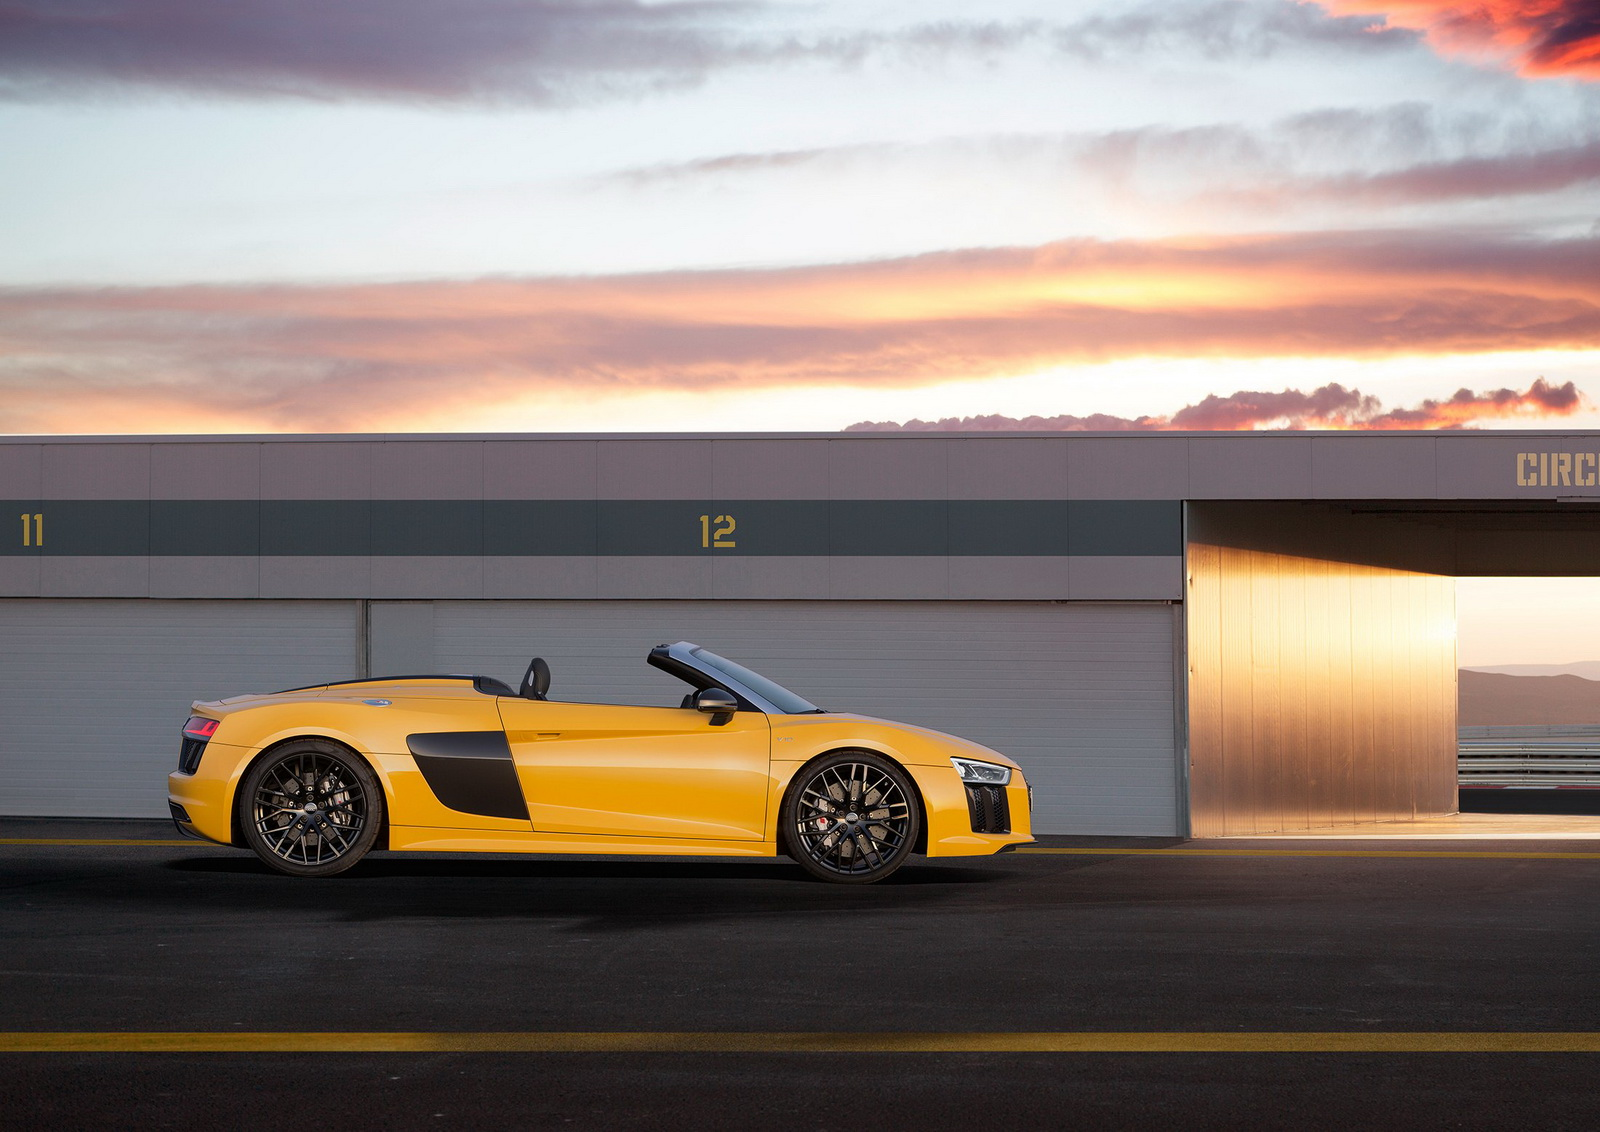 Next Porsche 911 And Audi R8 To Share Technologies